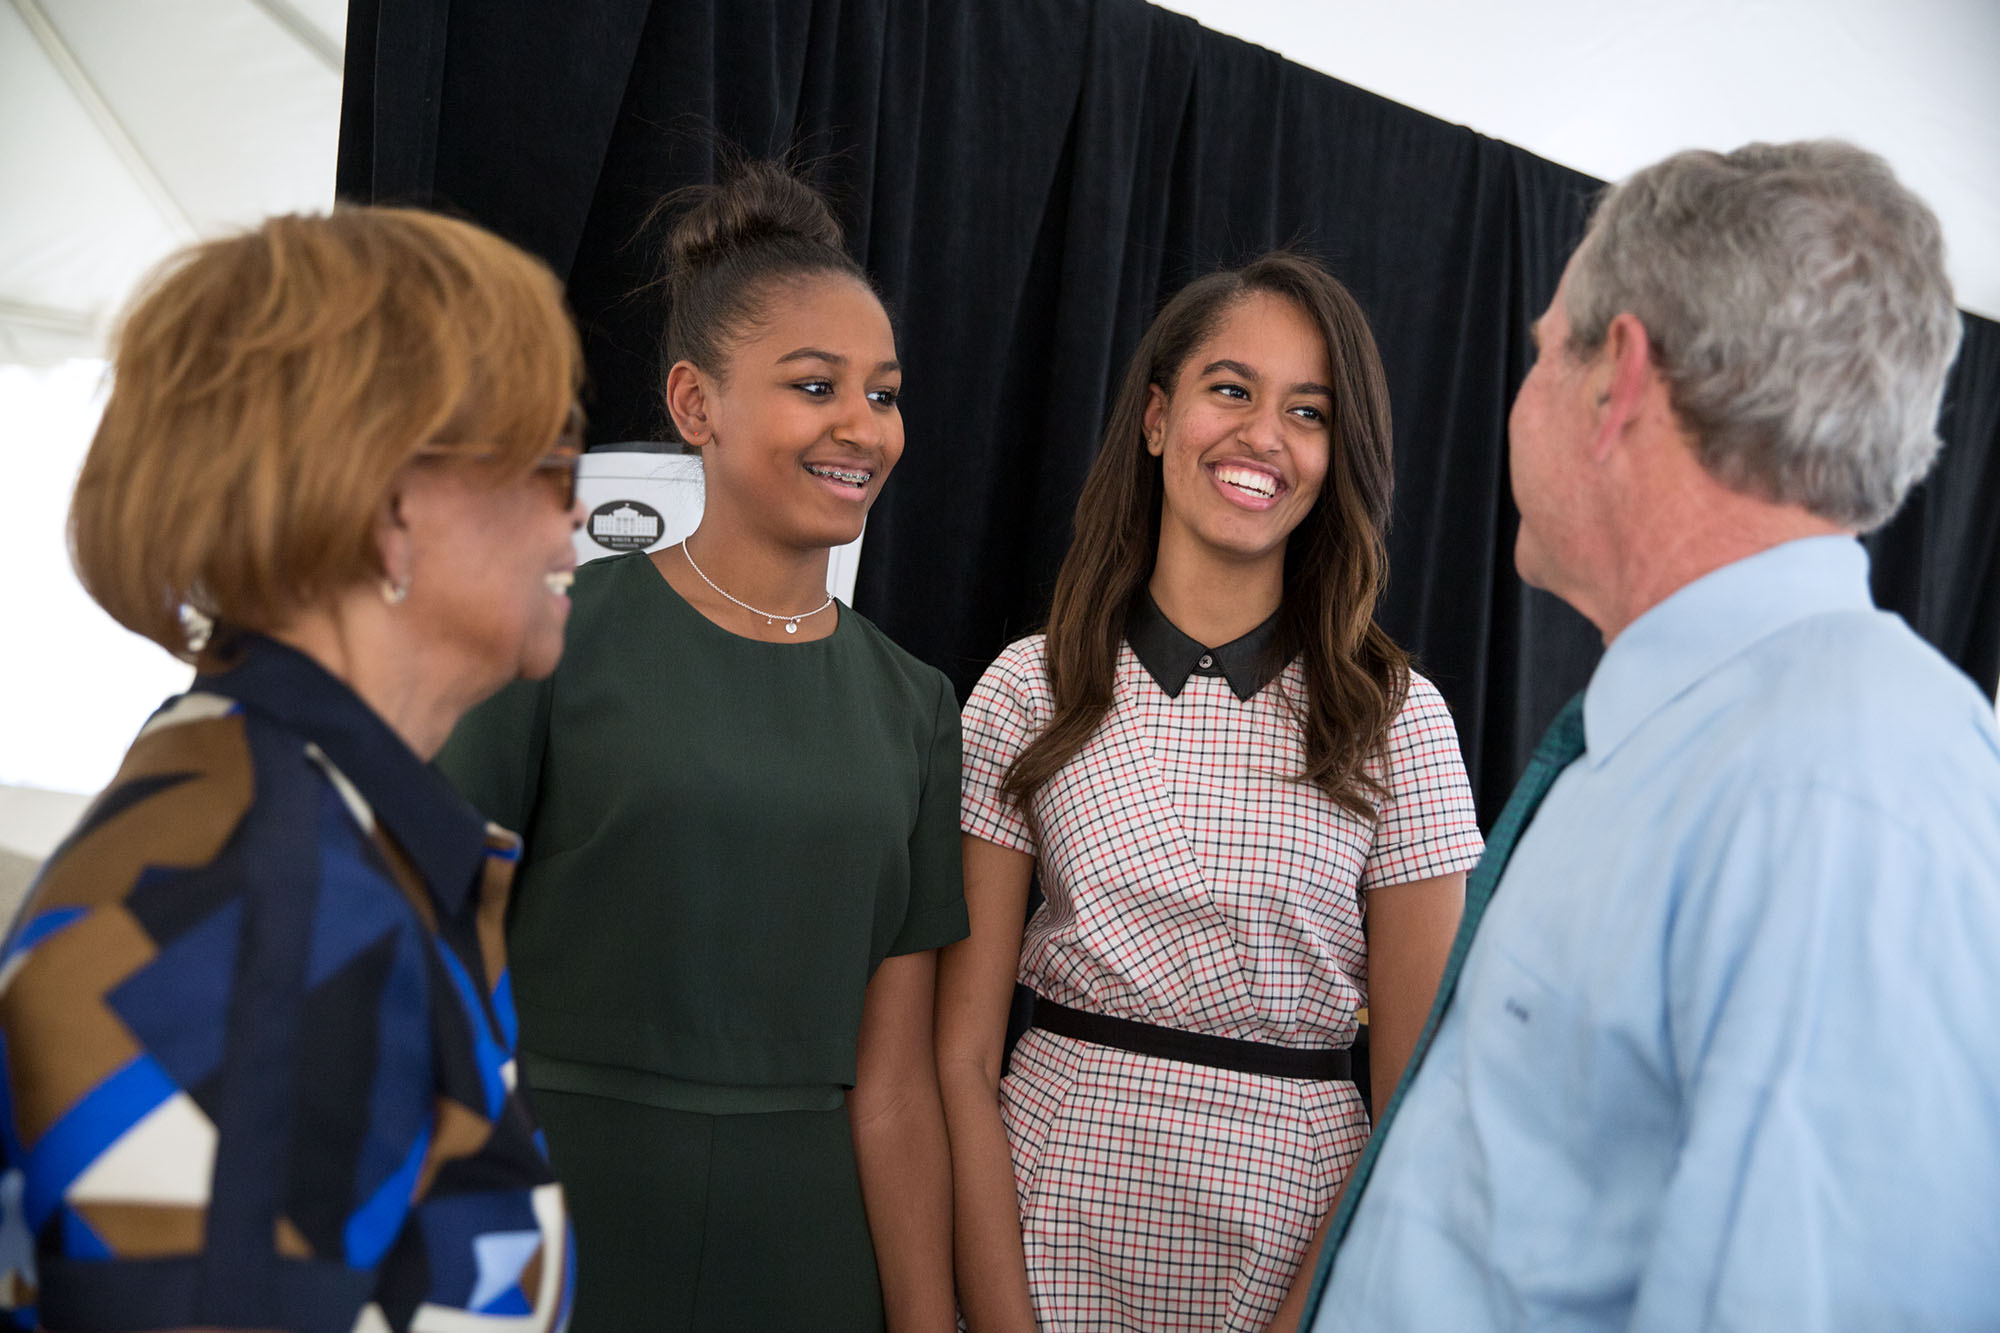 File:50th Anniversary of the Selma Marches - Backstage, former President Bush talks with